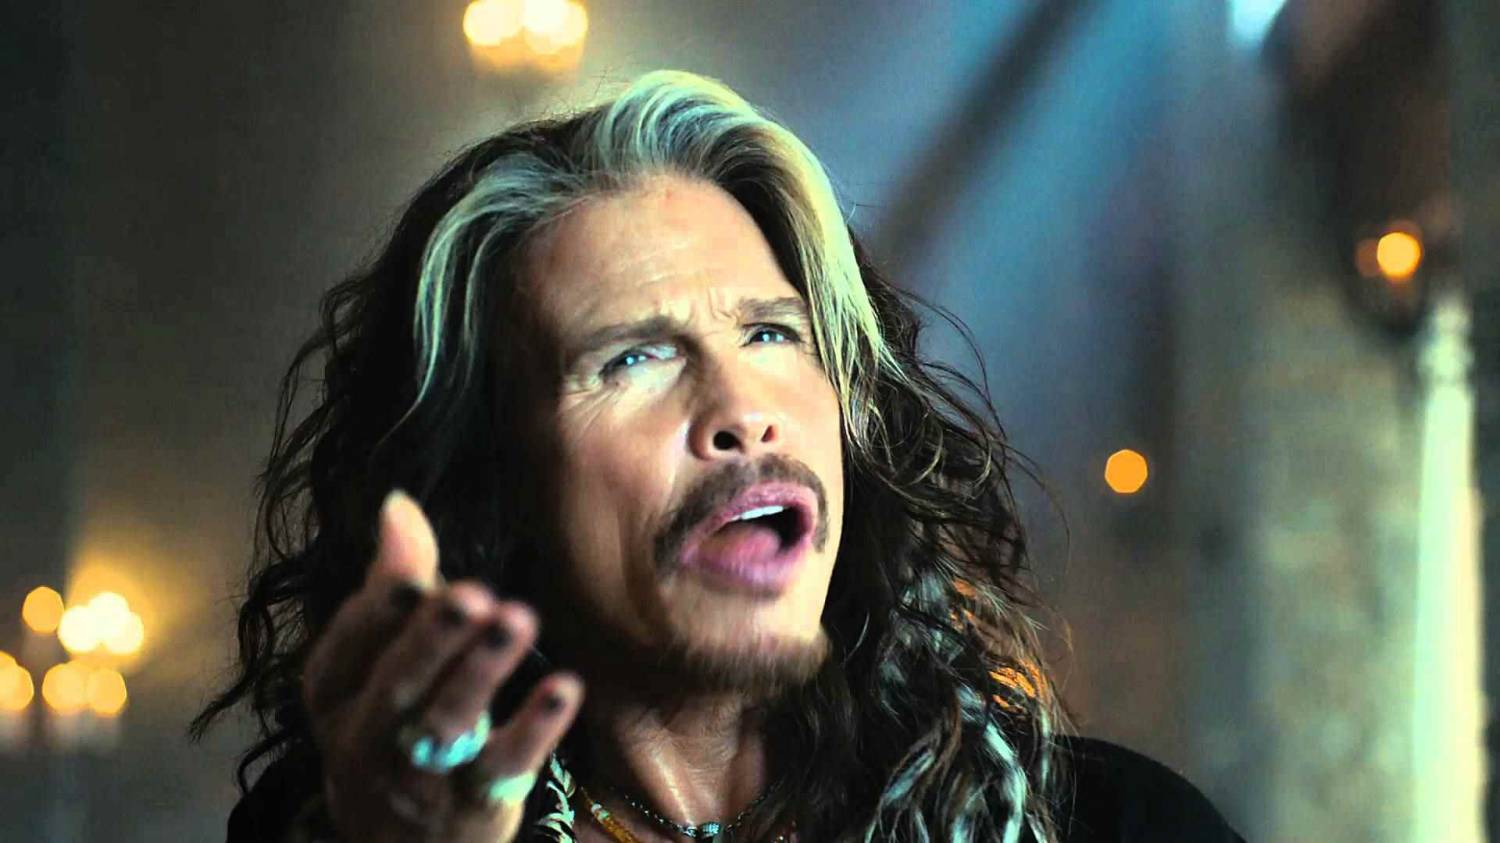 Музыка из рекламы Skittles - The Portrait (Steven Tyler)